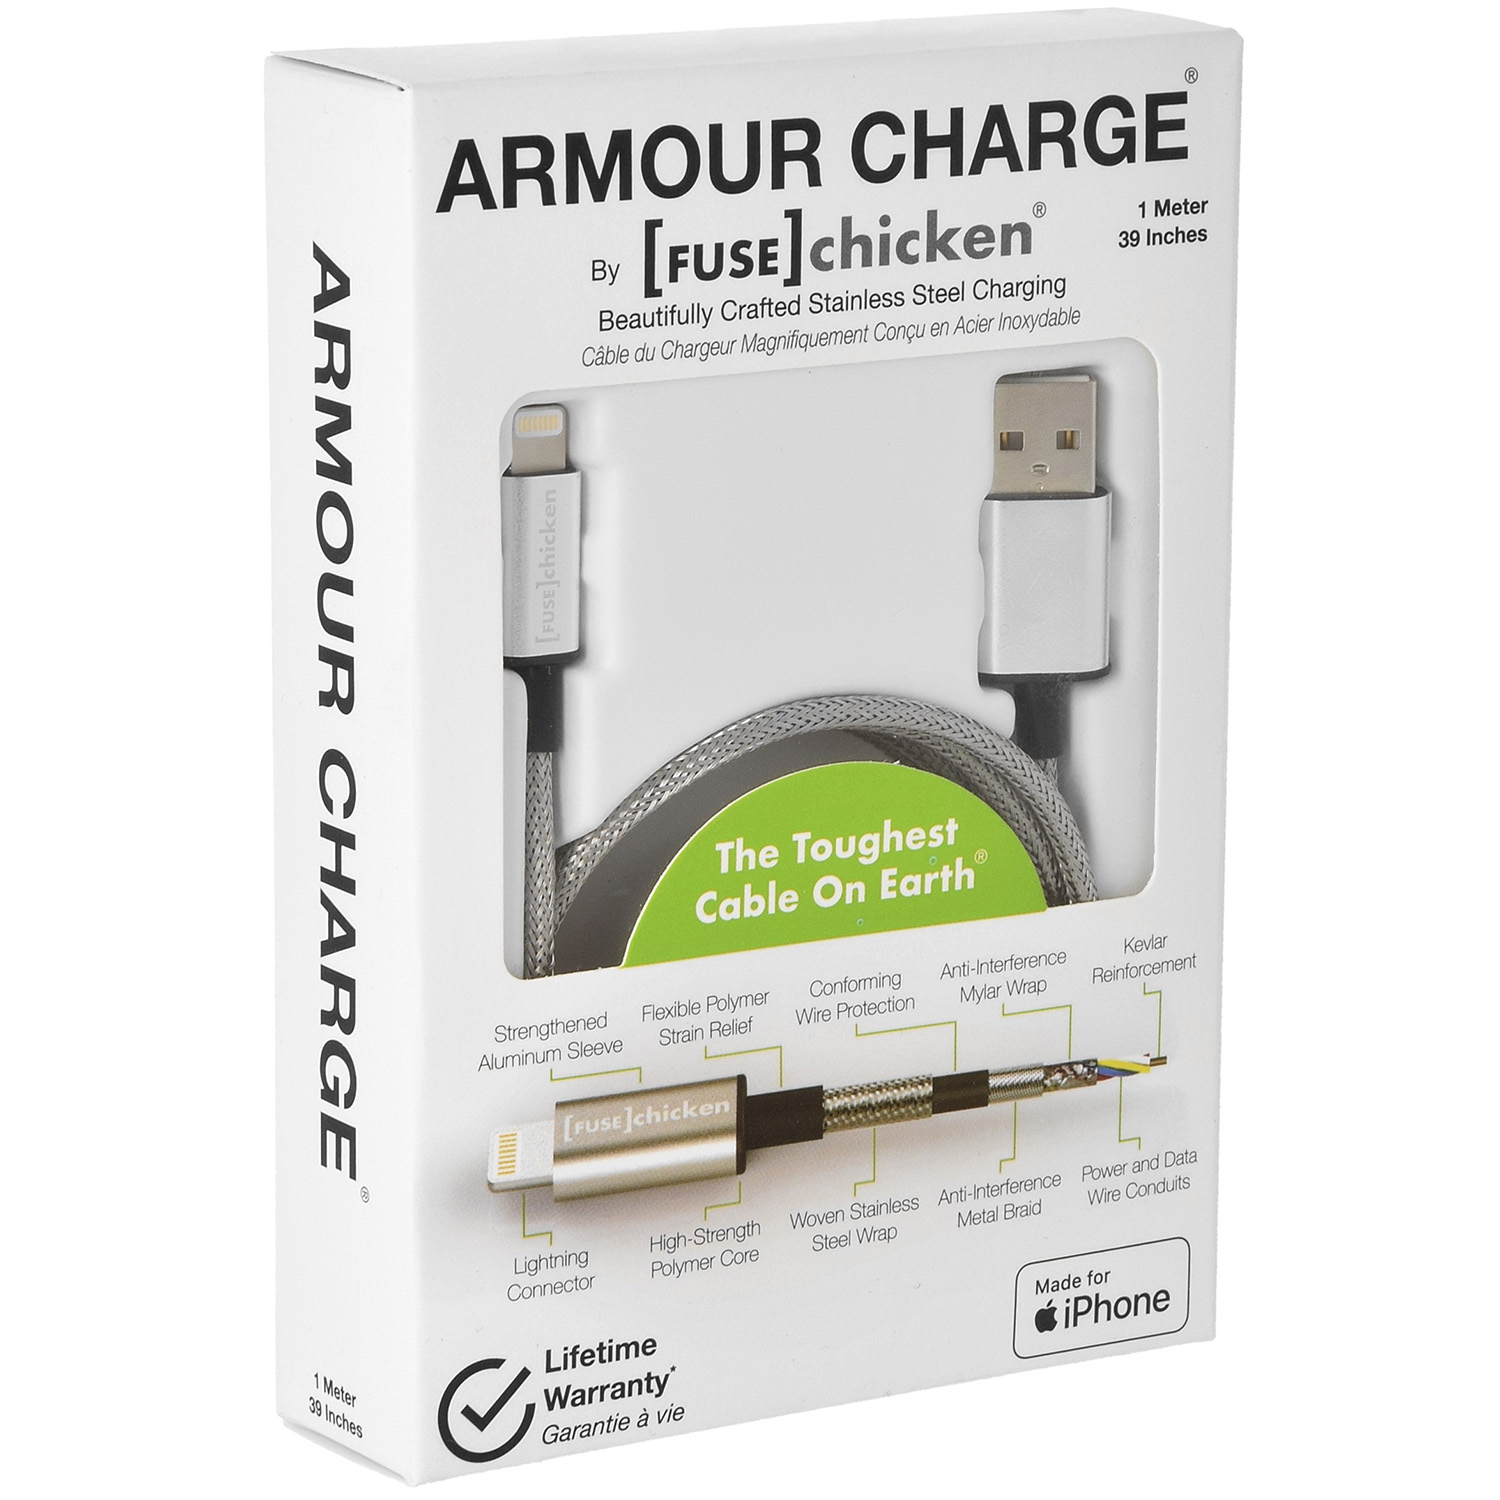 Kabel Fuse Chicken Armour Charge, USB-Lightning, 1m